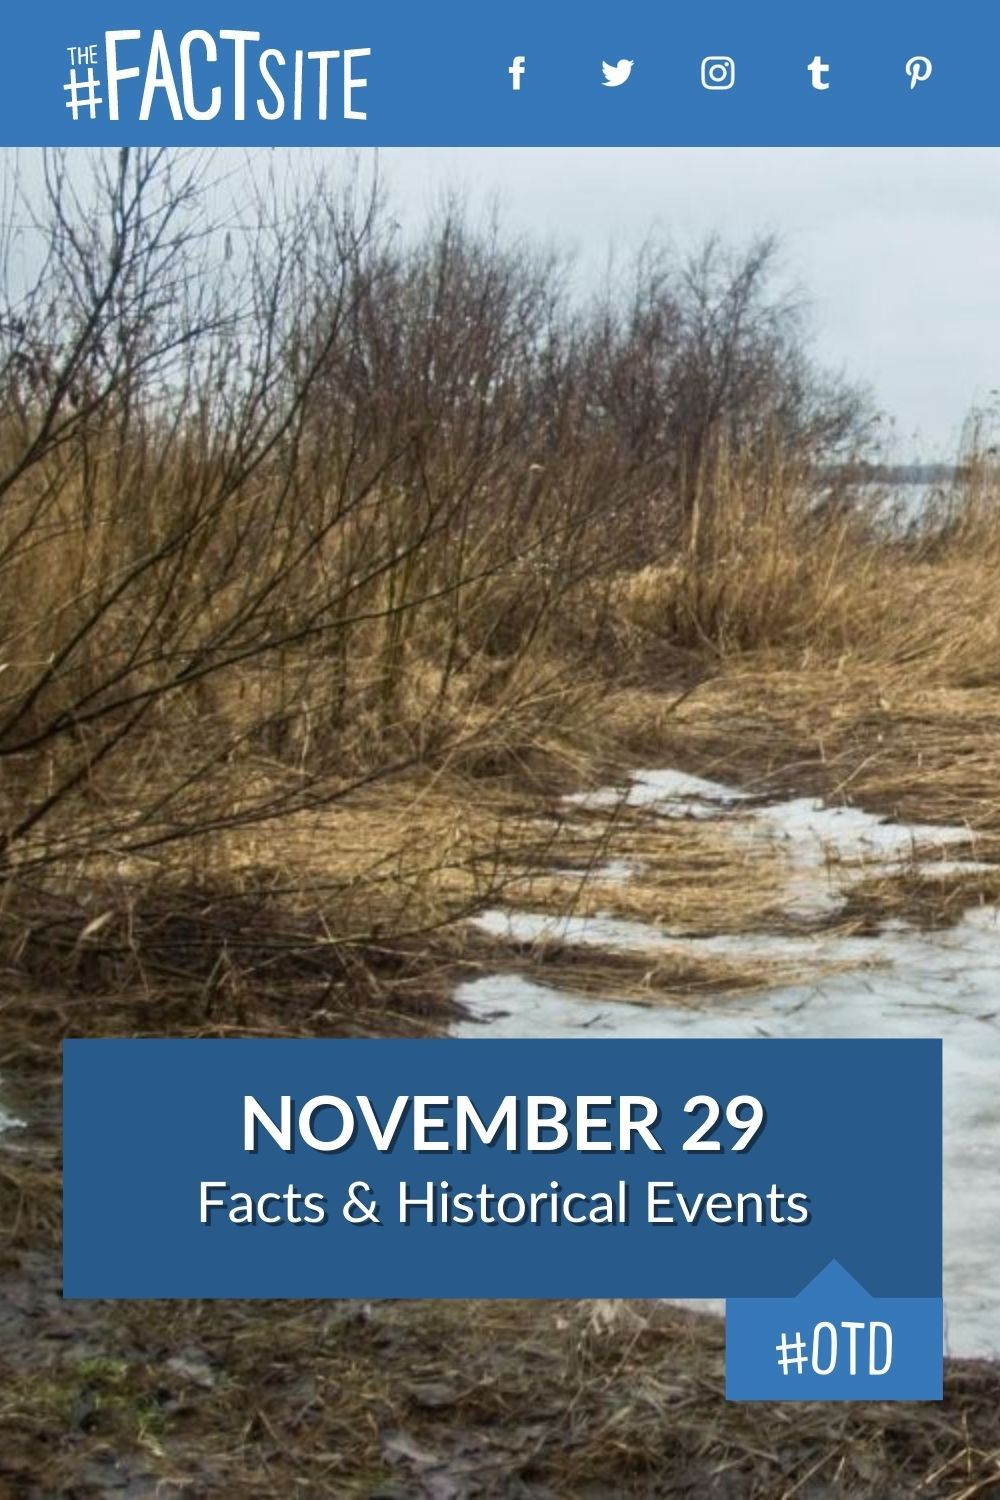 Facts & Historic Events That Happened on November 29